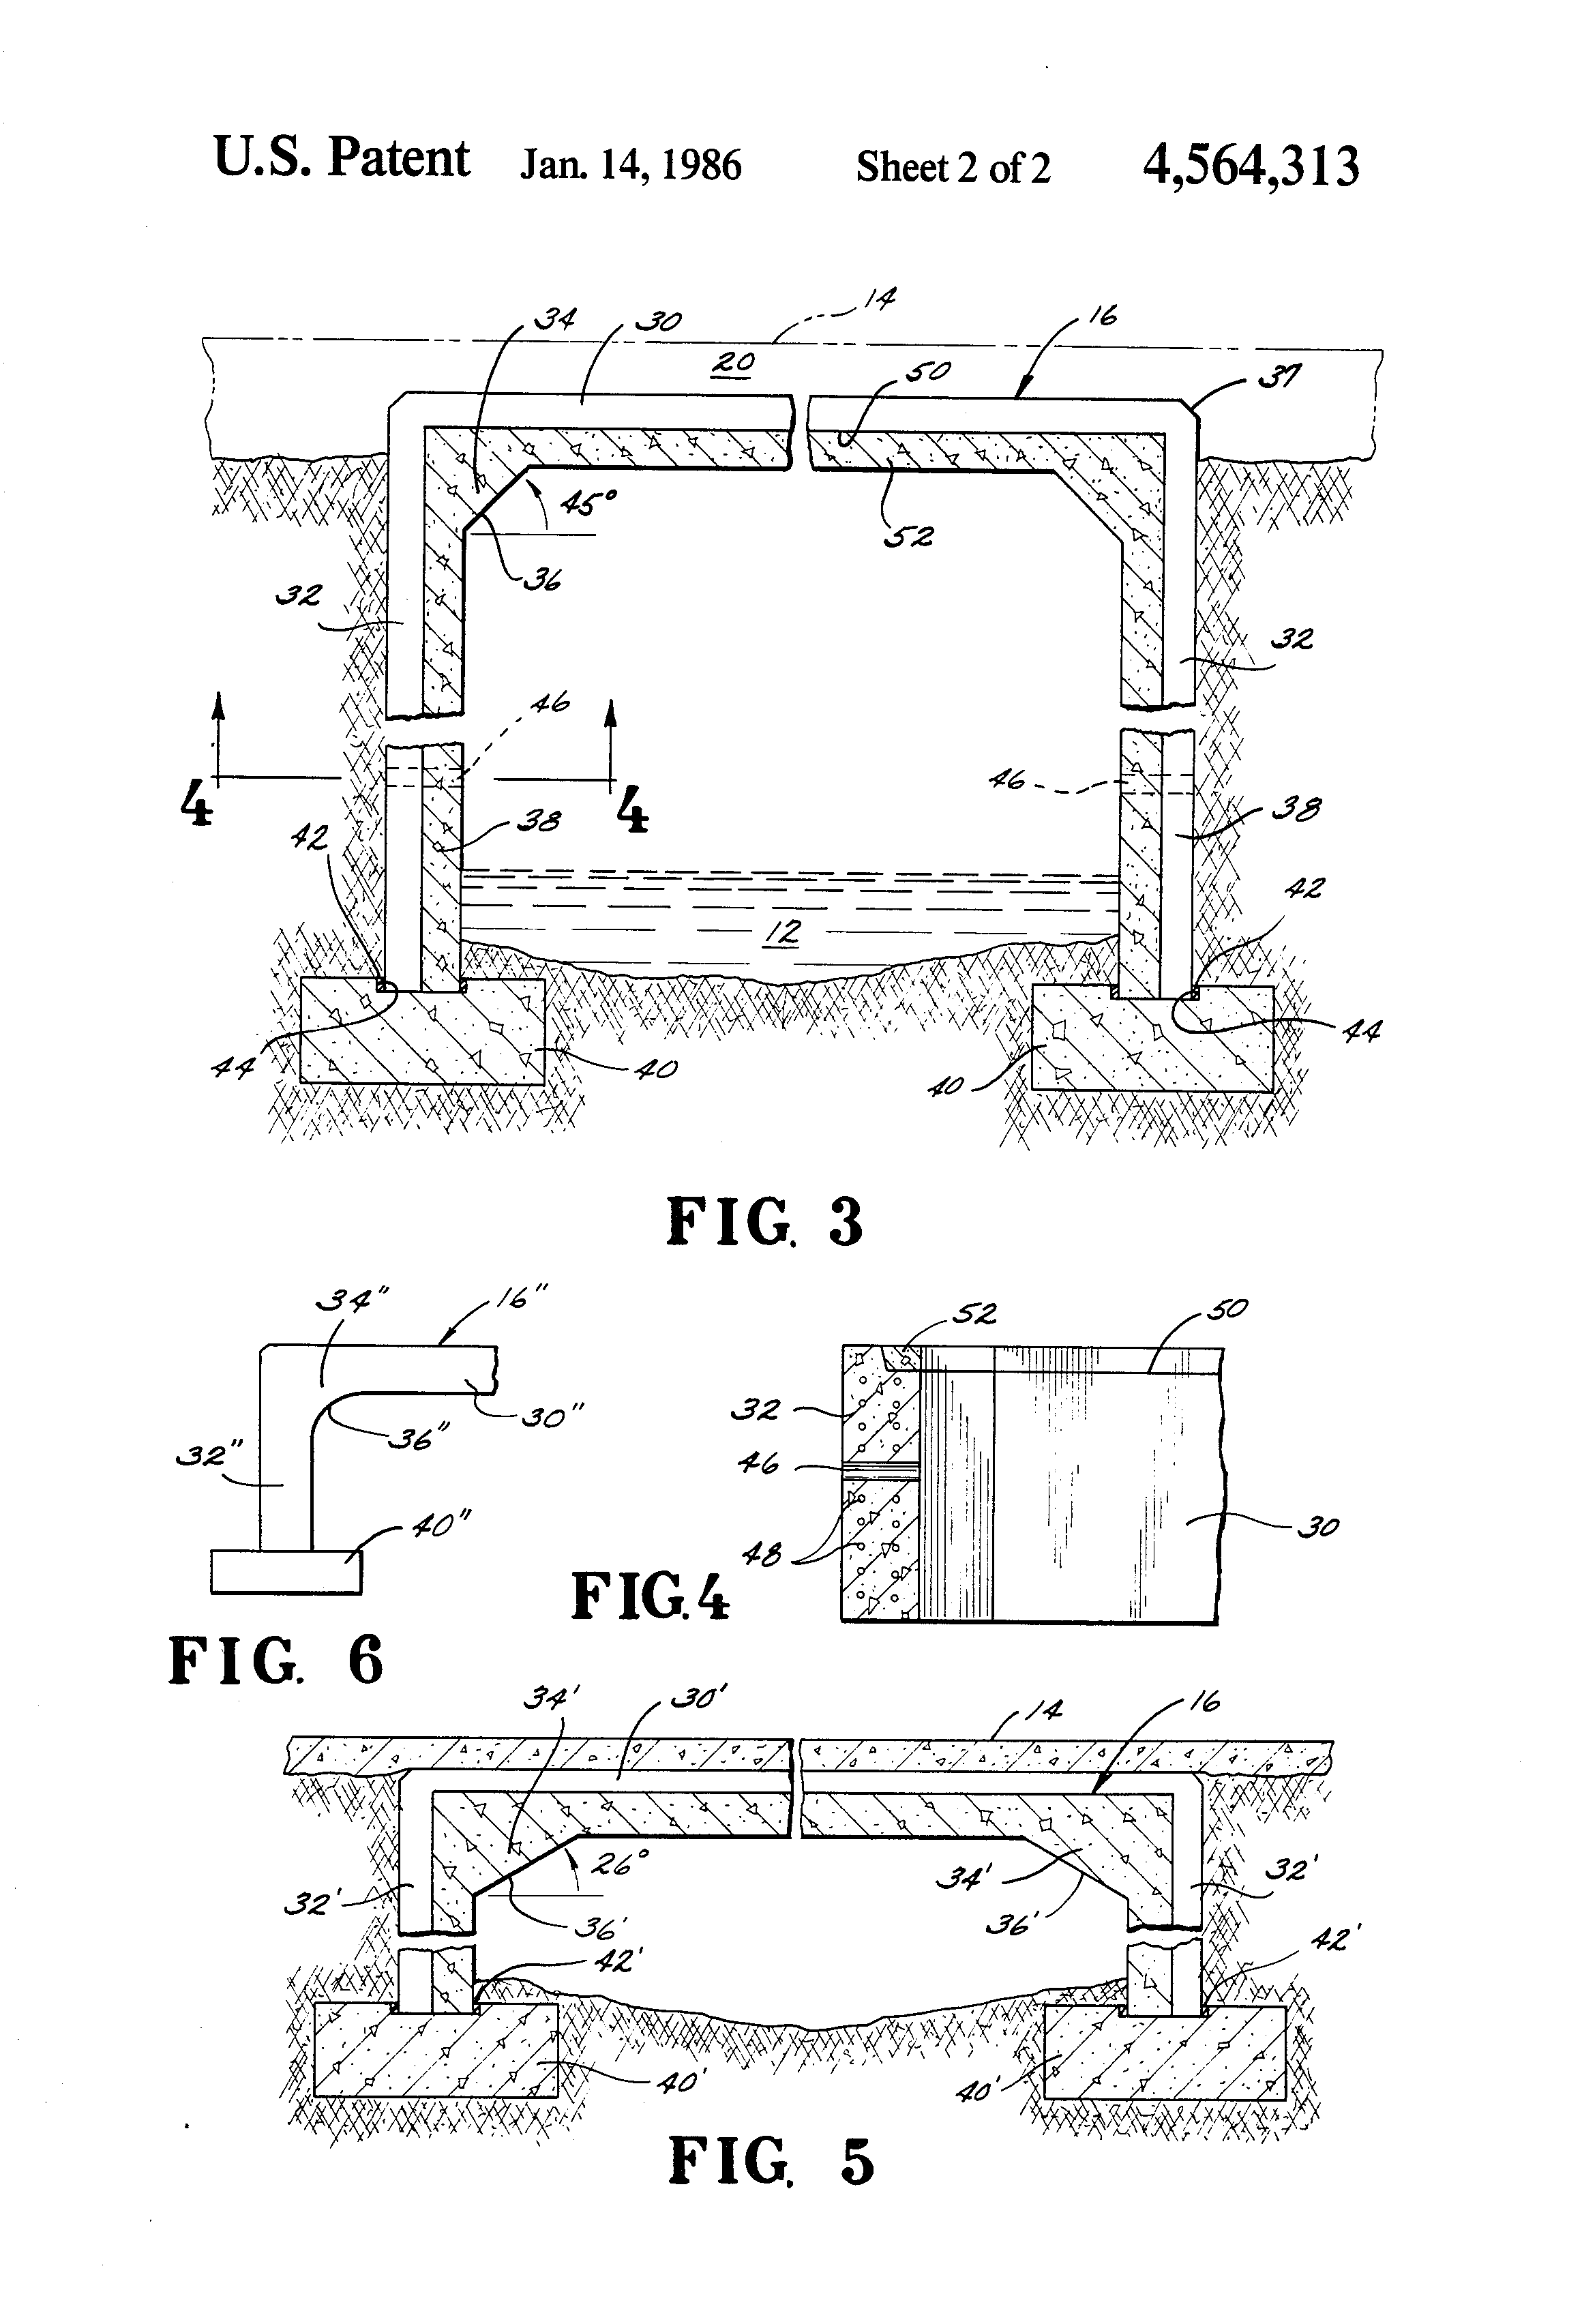 Simple Slab Culvert Design Drawings : Patent US4564313 - Rectilinear culvert structure - Google Patents